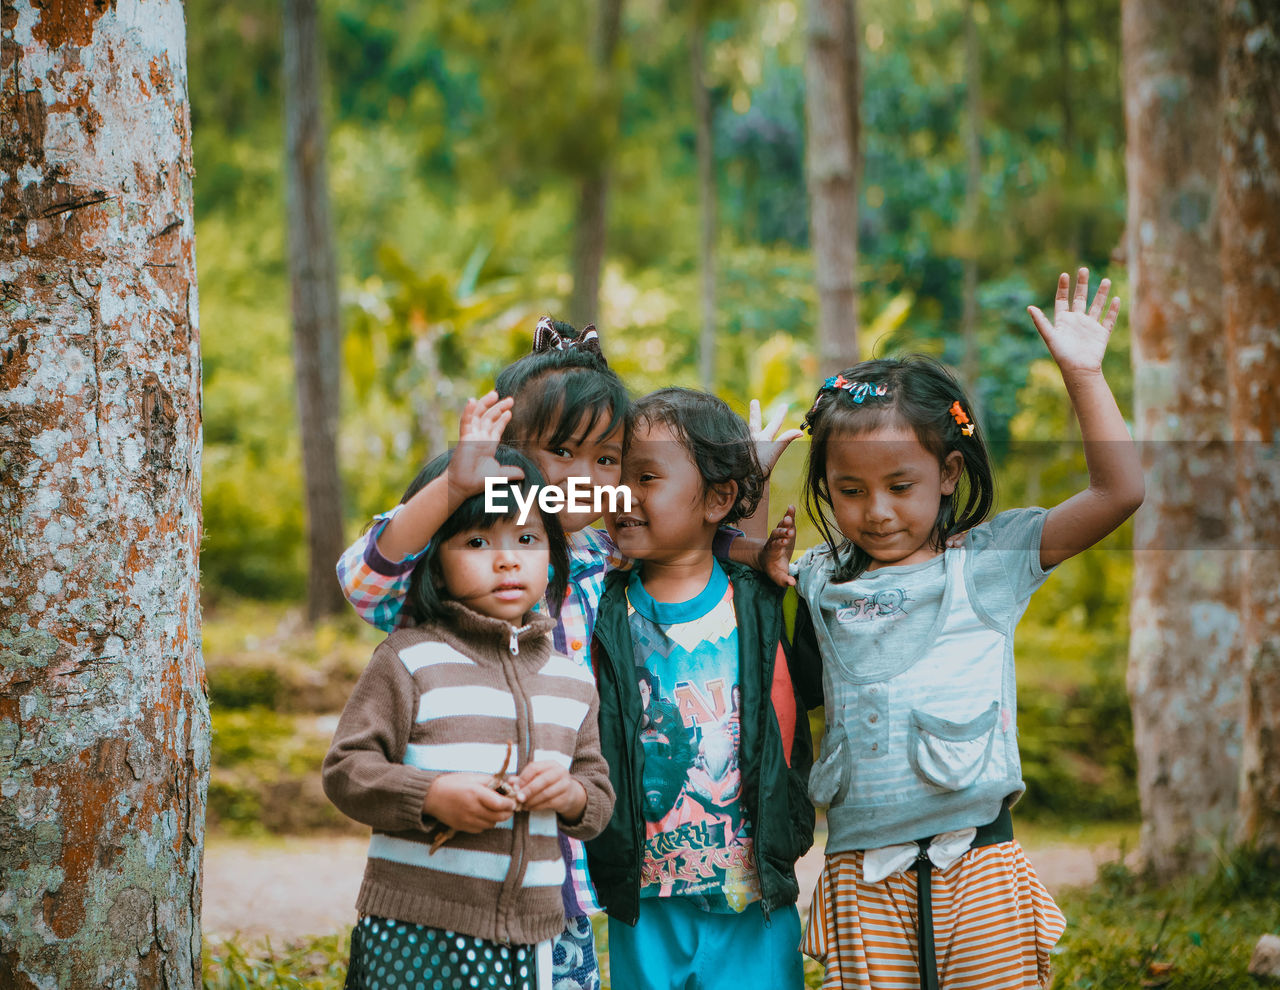 childhood, standing, looking at camera, boys, friendship, day, girls, child, outdoors, casual clothing, children only, togetherness, leisure activity, tree, portrait, smiling, happiness, group of people, real people, nature, people, human body part, adult